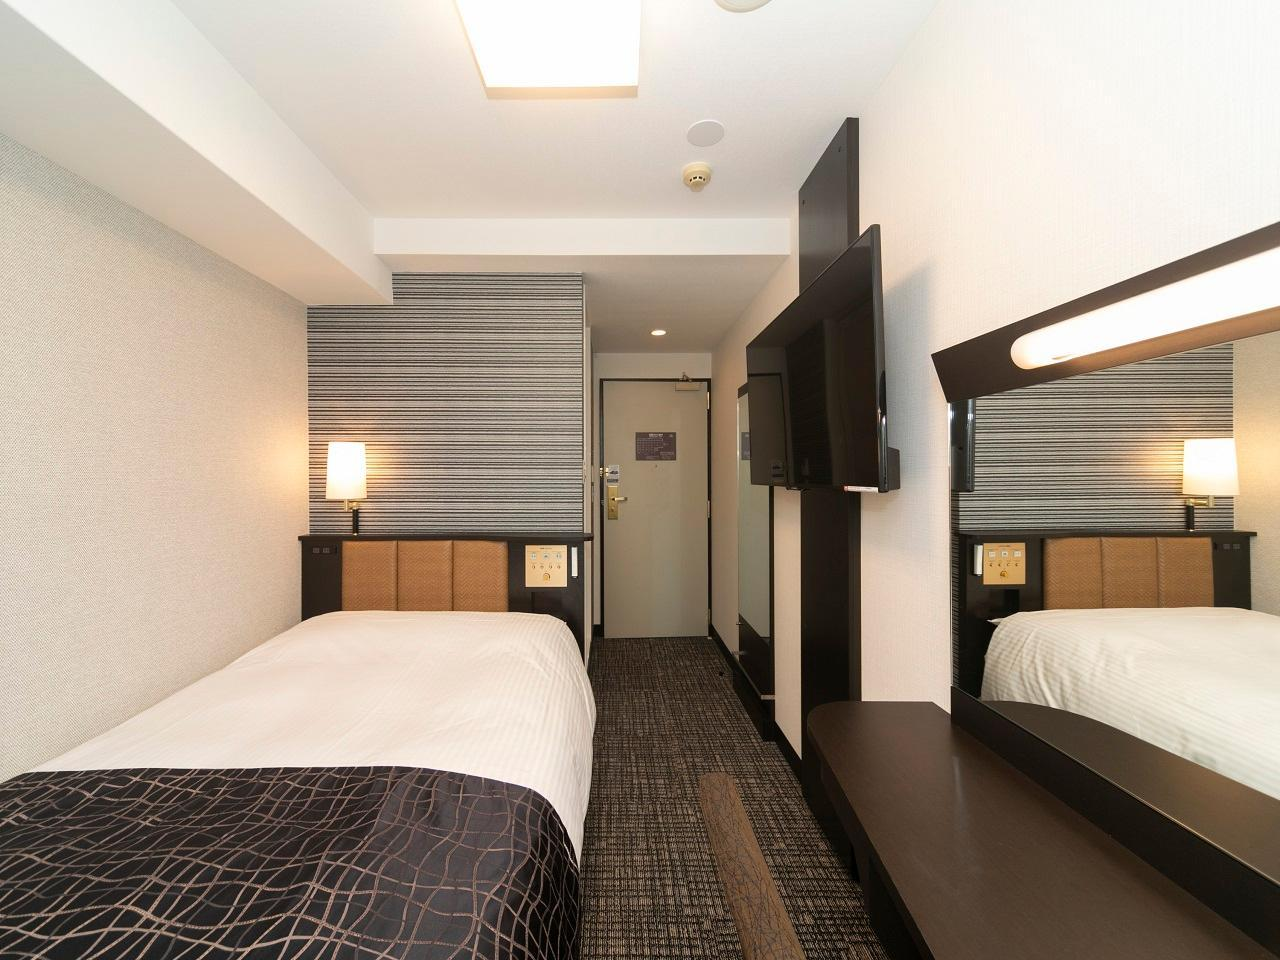 Day Use - Semi Double Room - Max 11 Hours Between 8:00 and 19:00 (11 hour use Only)